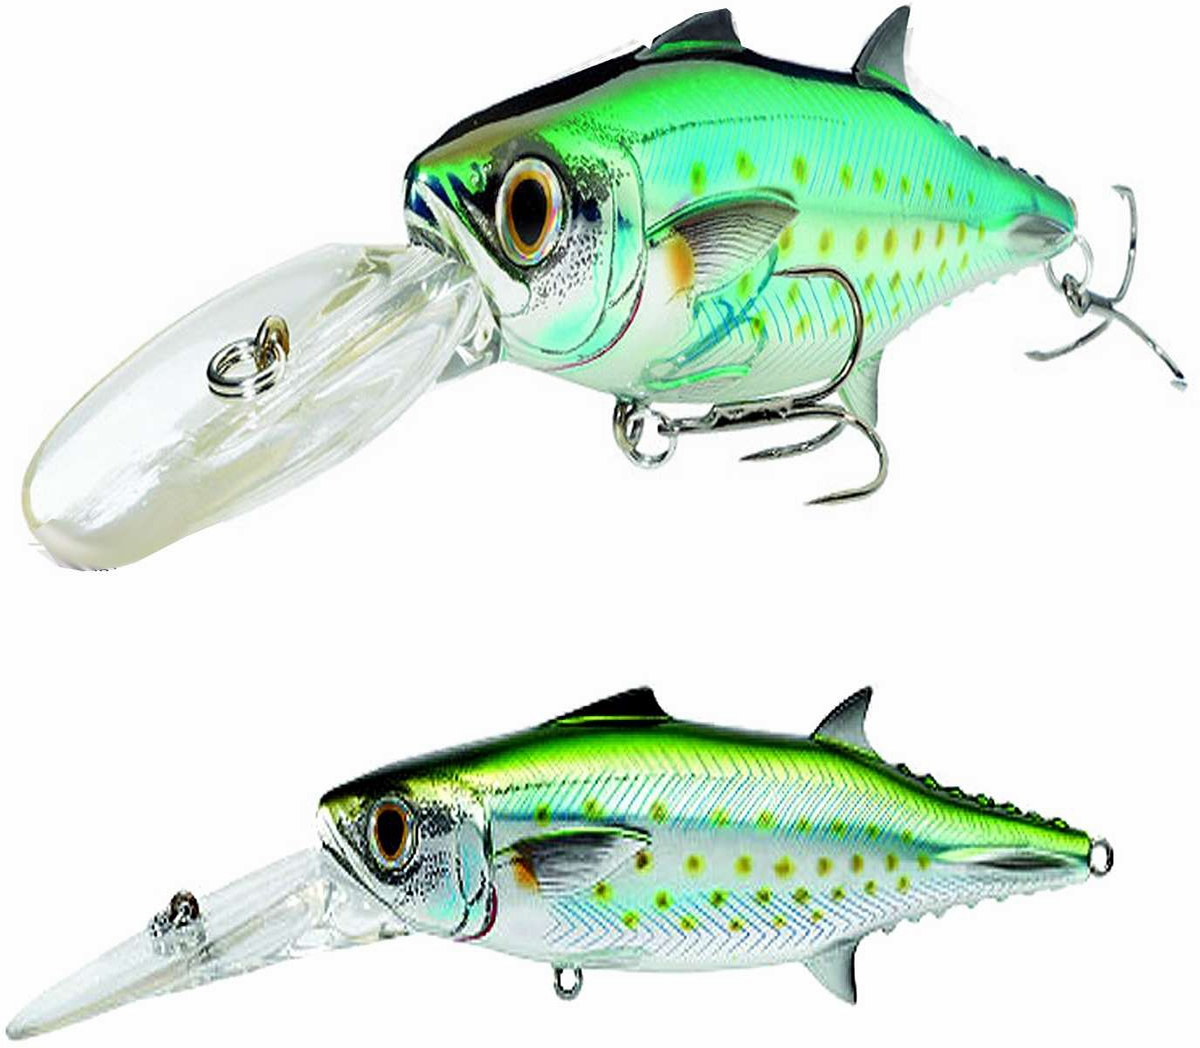 Livetarget spanish mackerel trolling bait lures tackledirect for Saltwater fishing lures